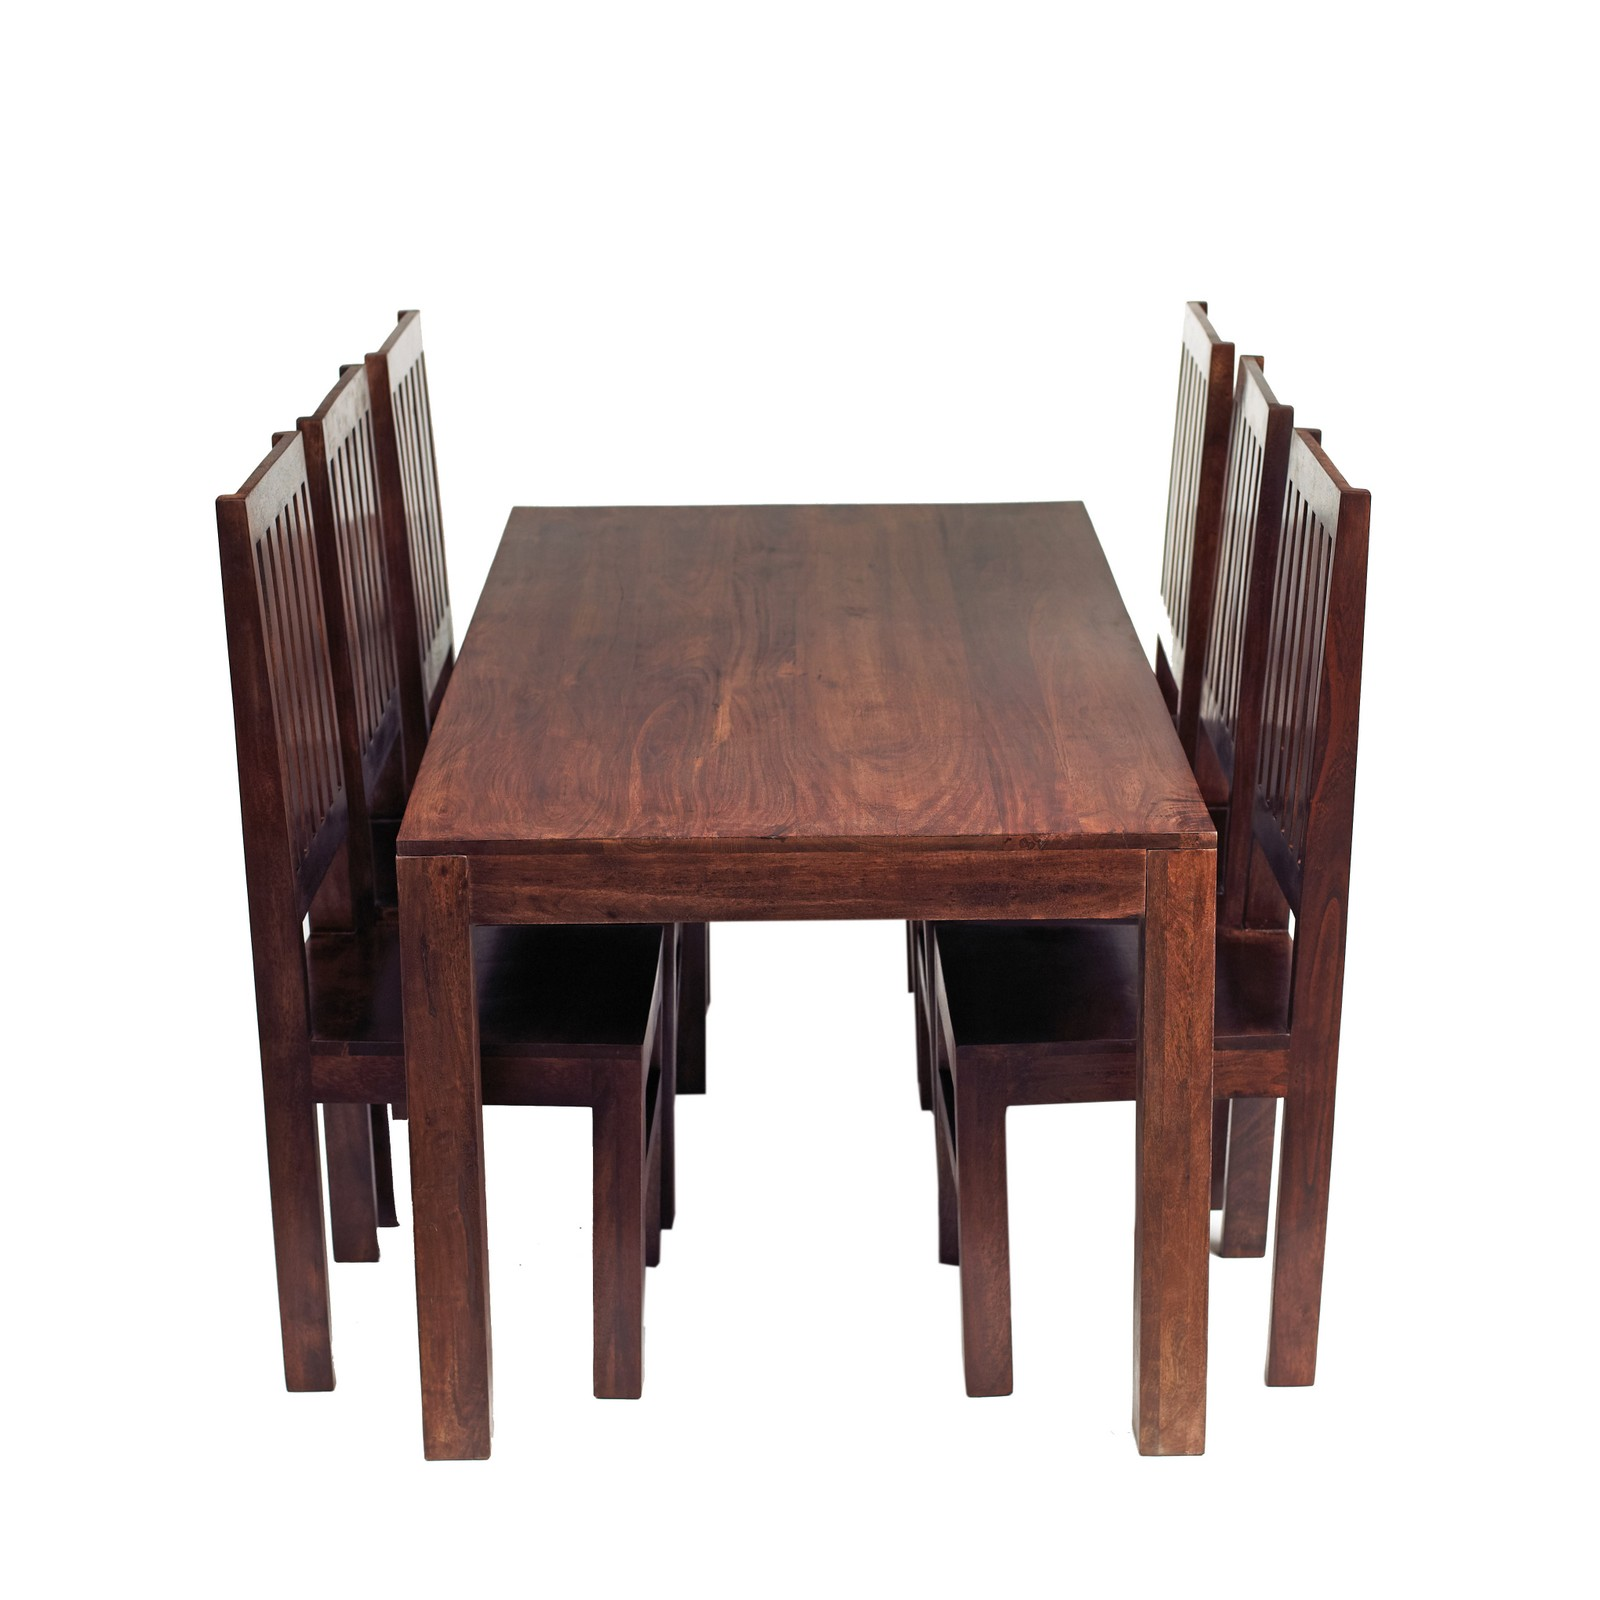 Dakota Mango 6 Ft Dining Set With Wooden Chairs Verty Indian Furniture